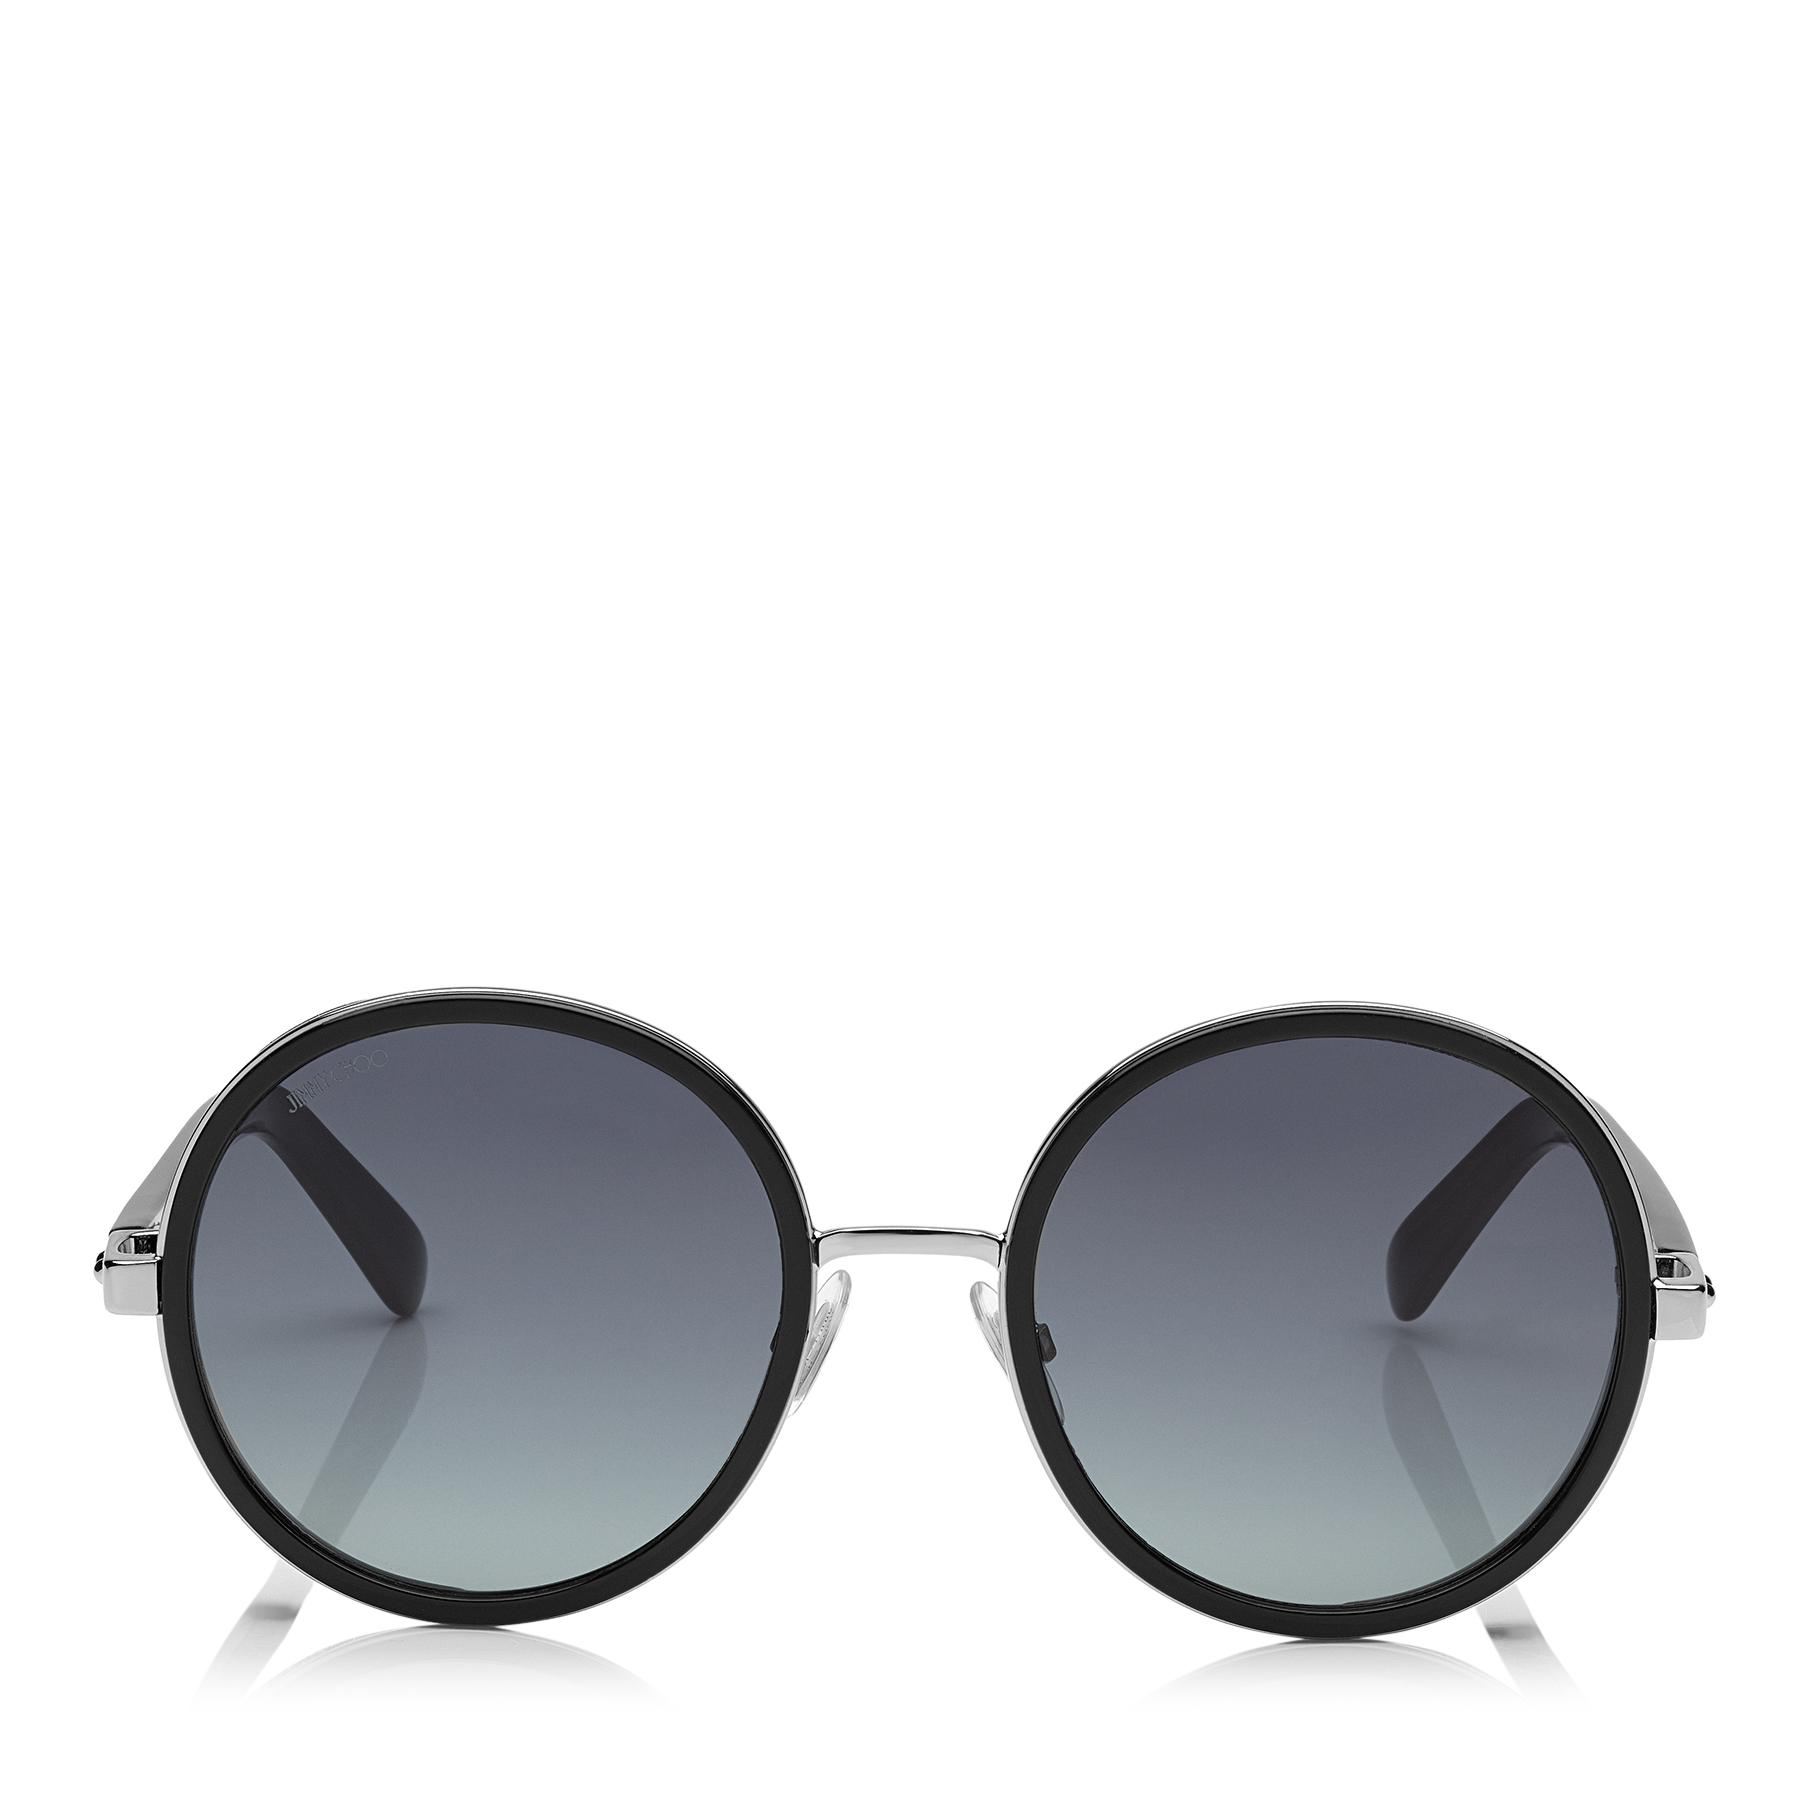 f9d5156aab3 Lyst - Jimmy Choo Andie Black Acetate Round Framed Sunglasses With ...